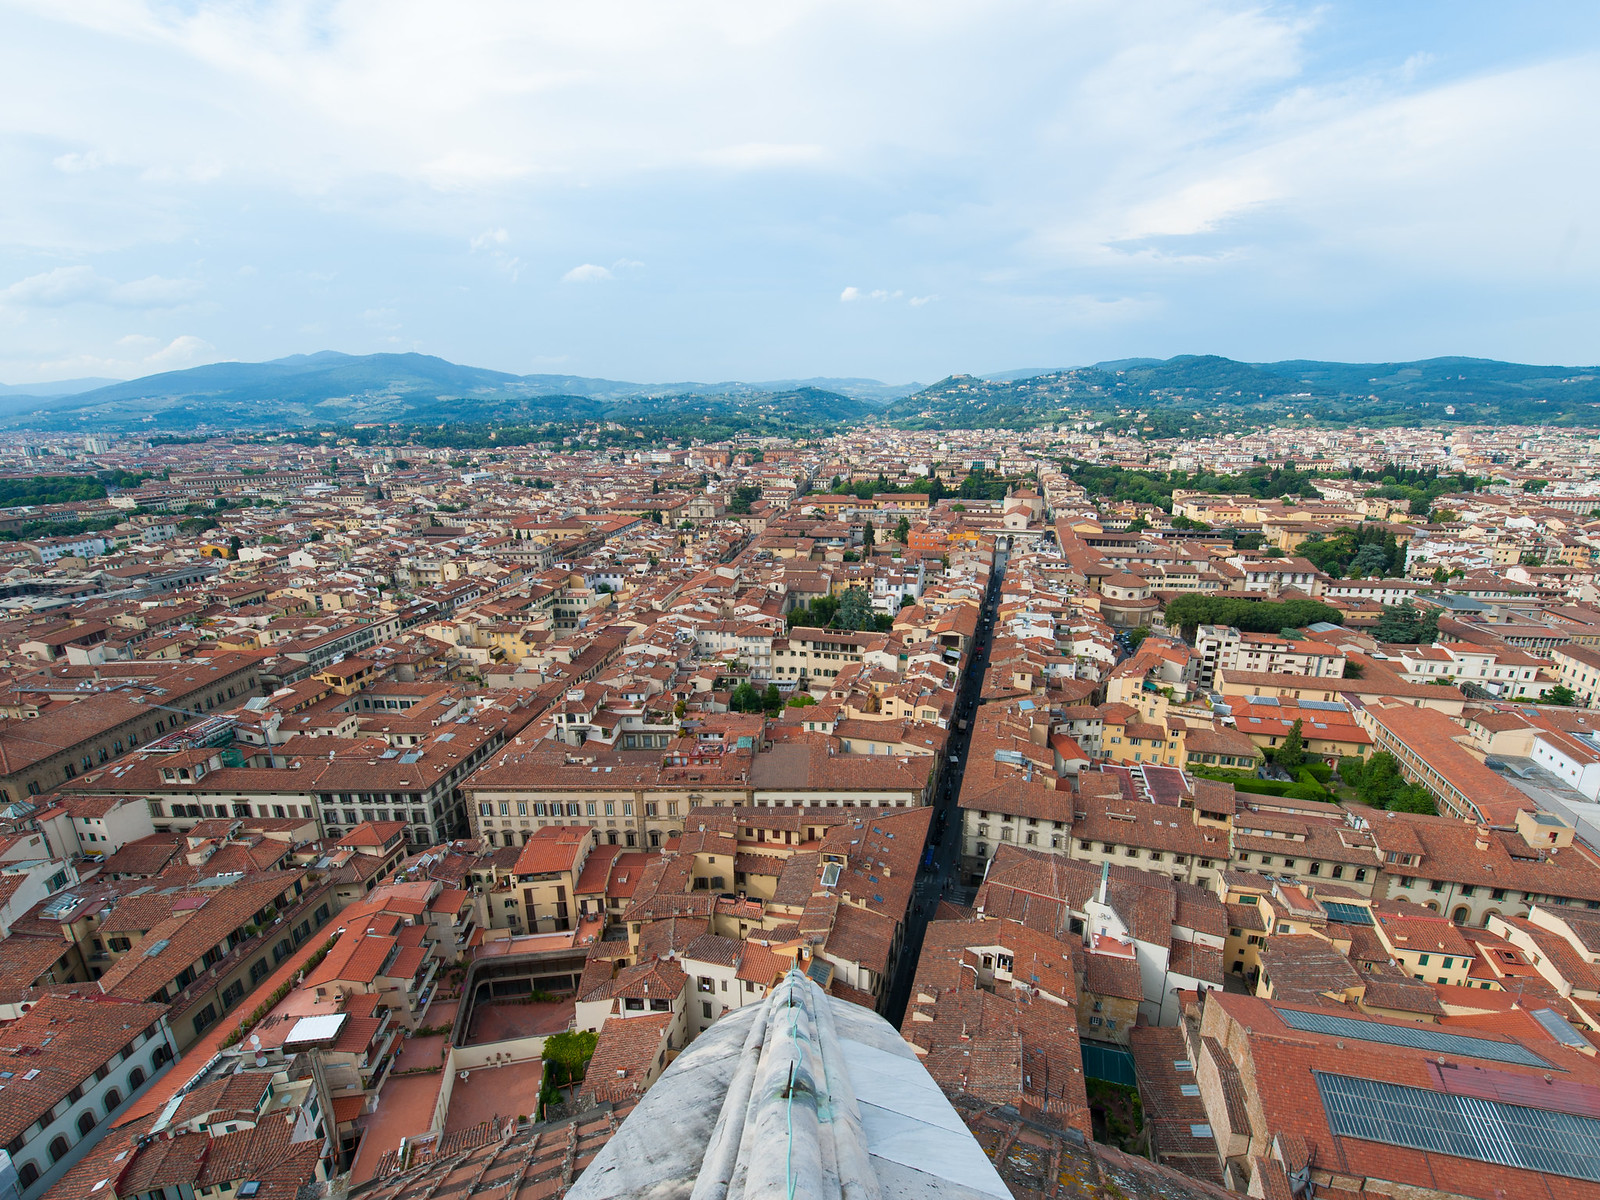 View of Florence from the top of of Duomo di Firenze, Florence Italy